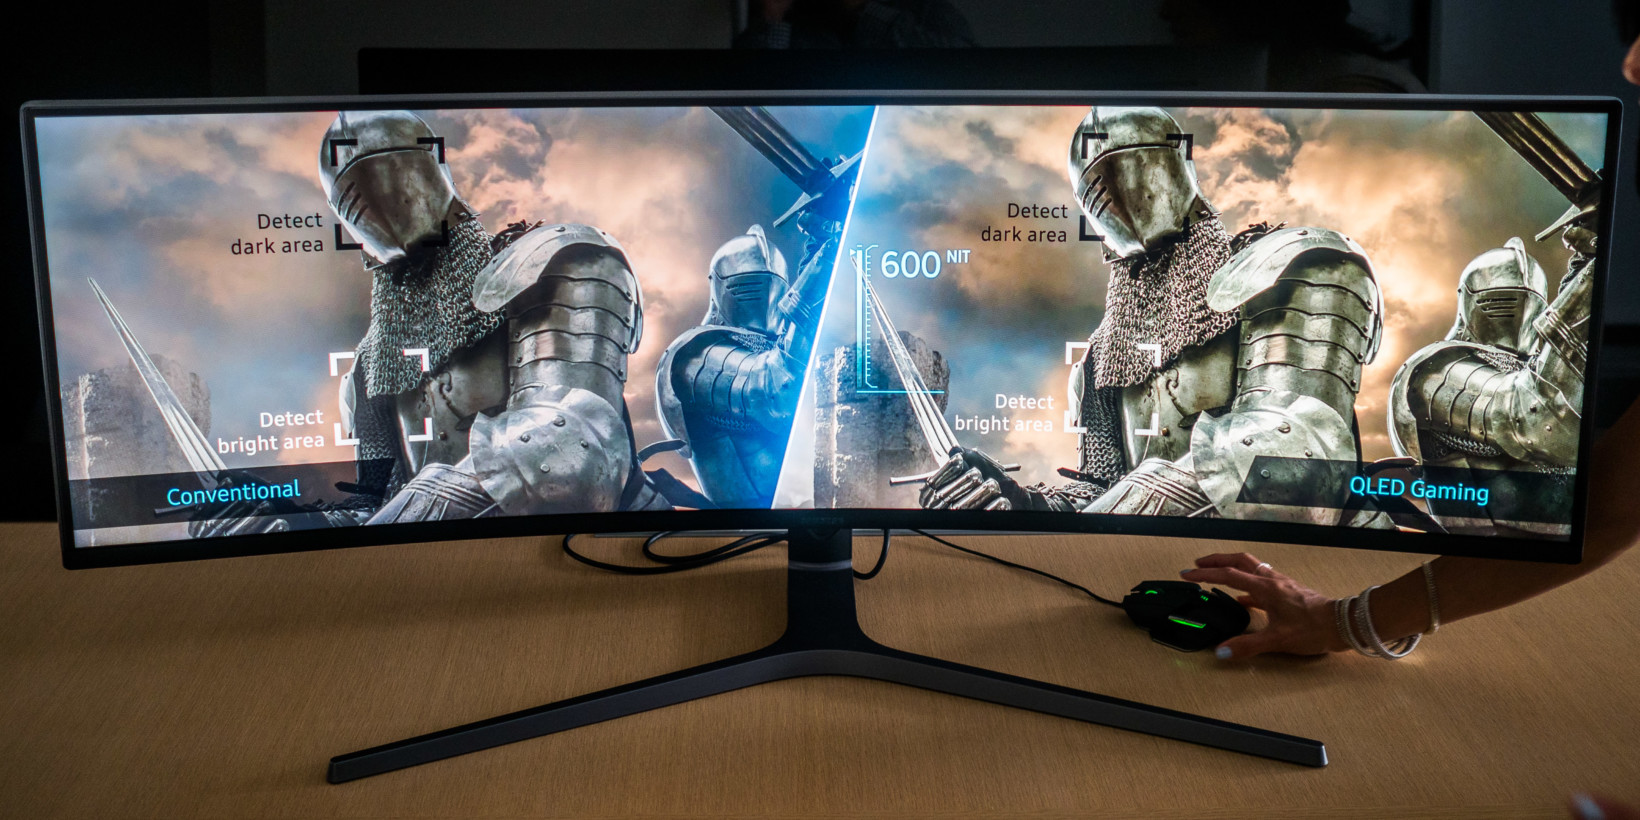 samsung 39 s insane 32 9 gaming monitor laughs at your dual monitor setup. Black Bedroom Furniture Sets. Home Design Ideas